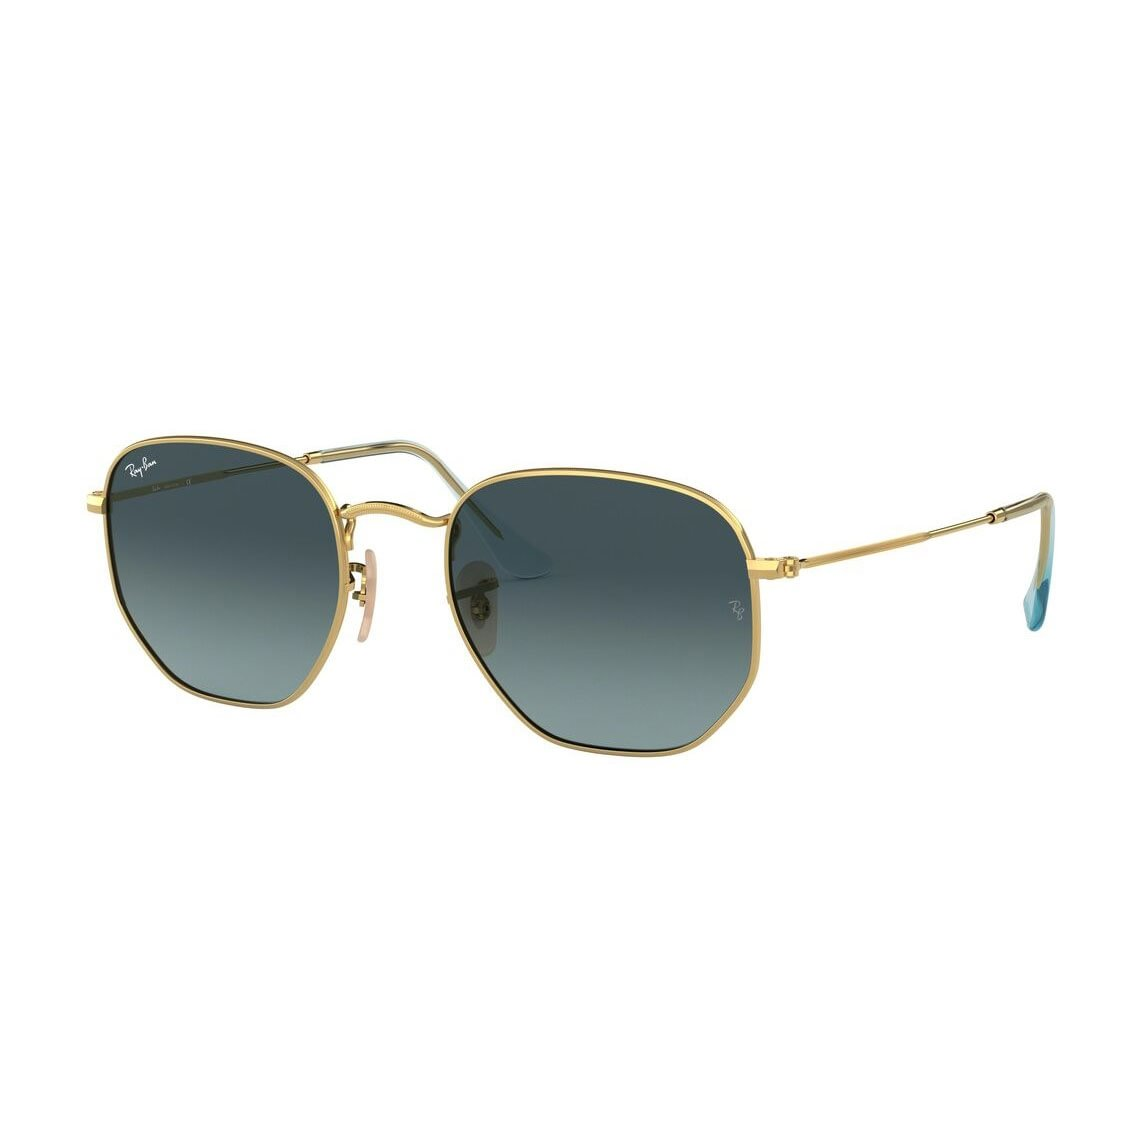 Ray-Ban Hexagonal Flat Lenses RB3548N 91233M 5421